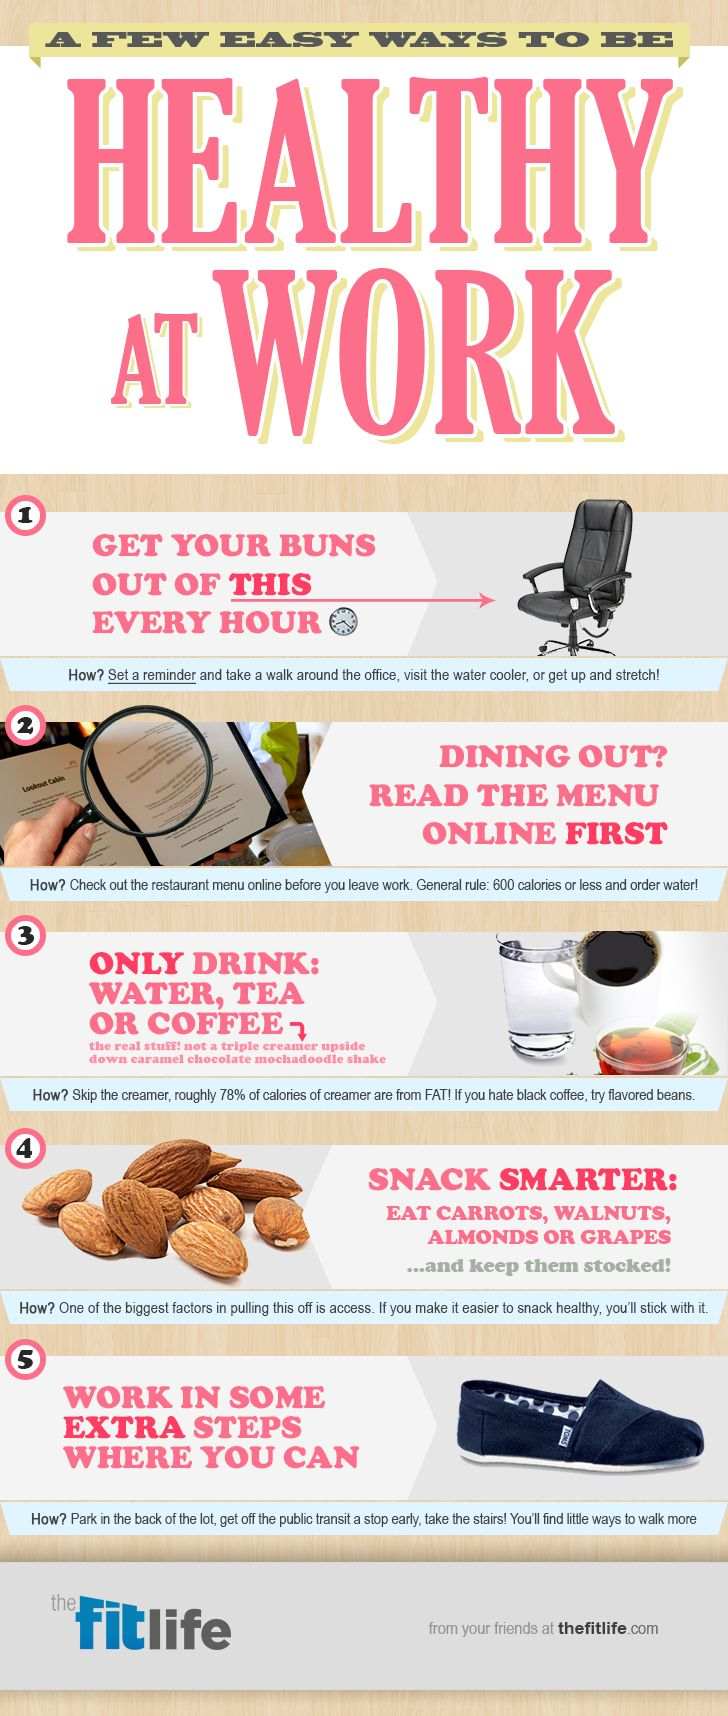 Think you can't get healthy at work? Think again with